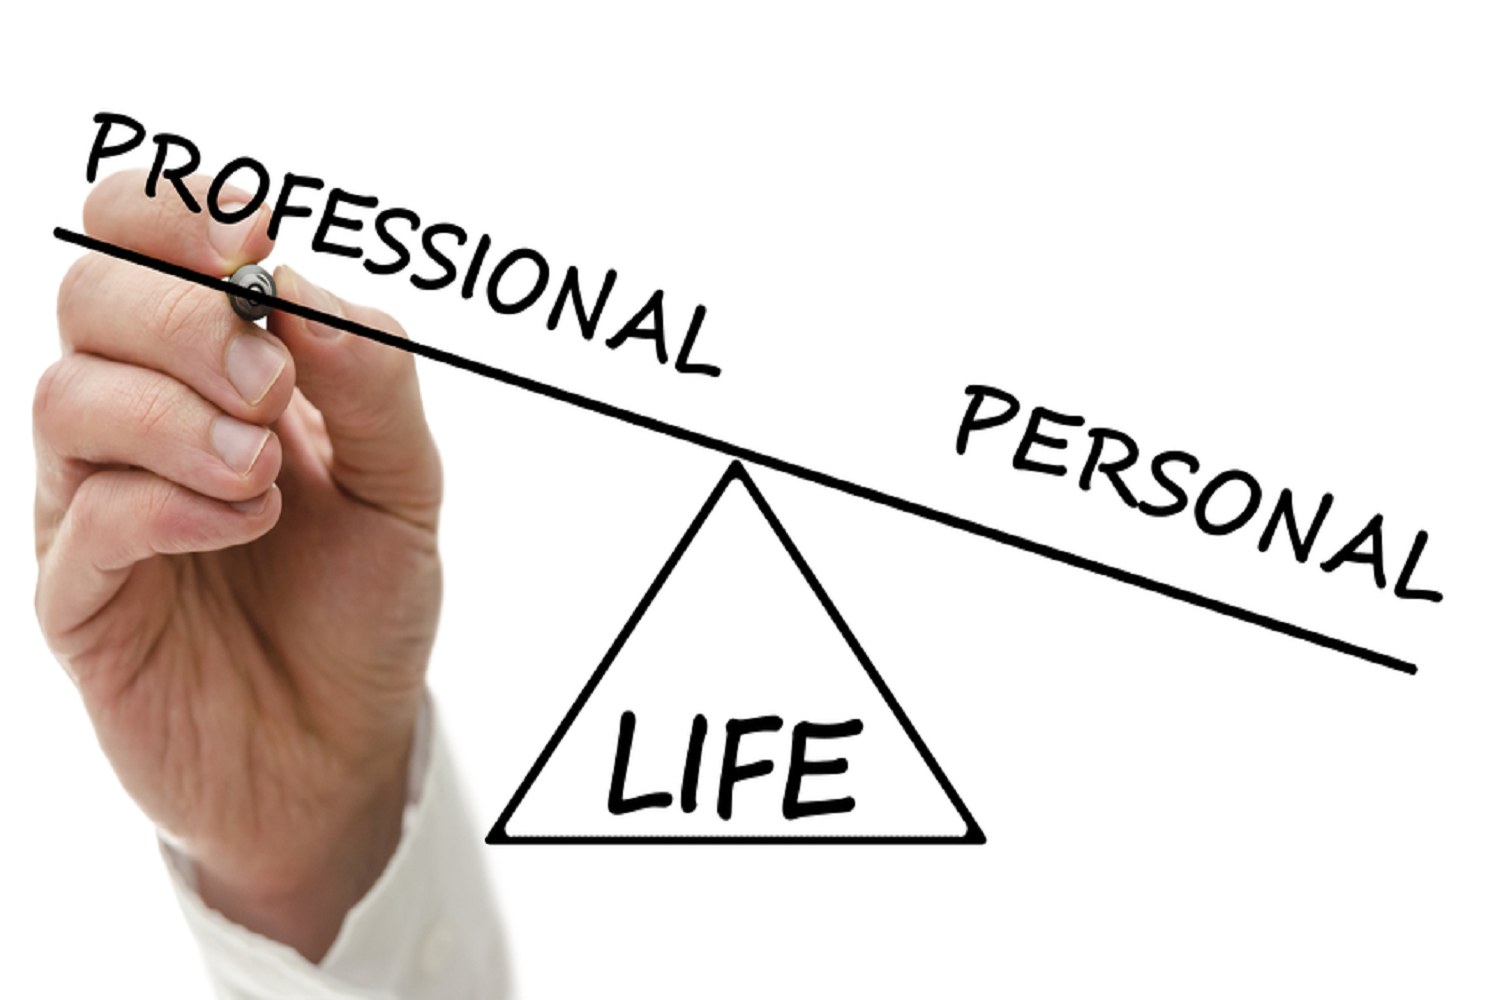 5 Incredible Tips To Triumph In Personal and Professional Life